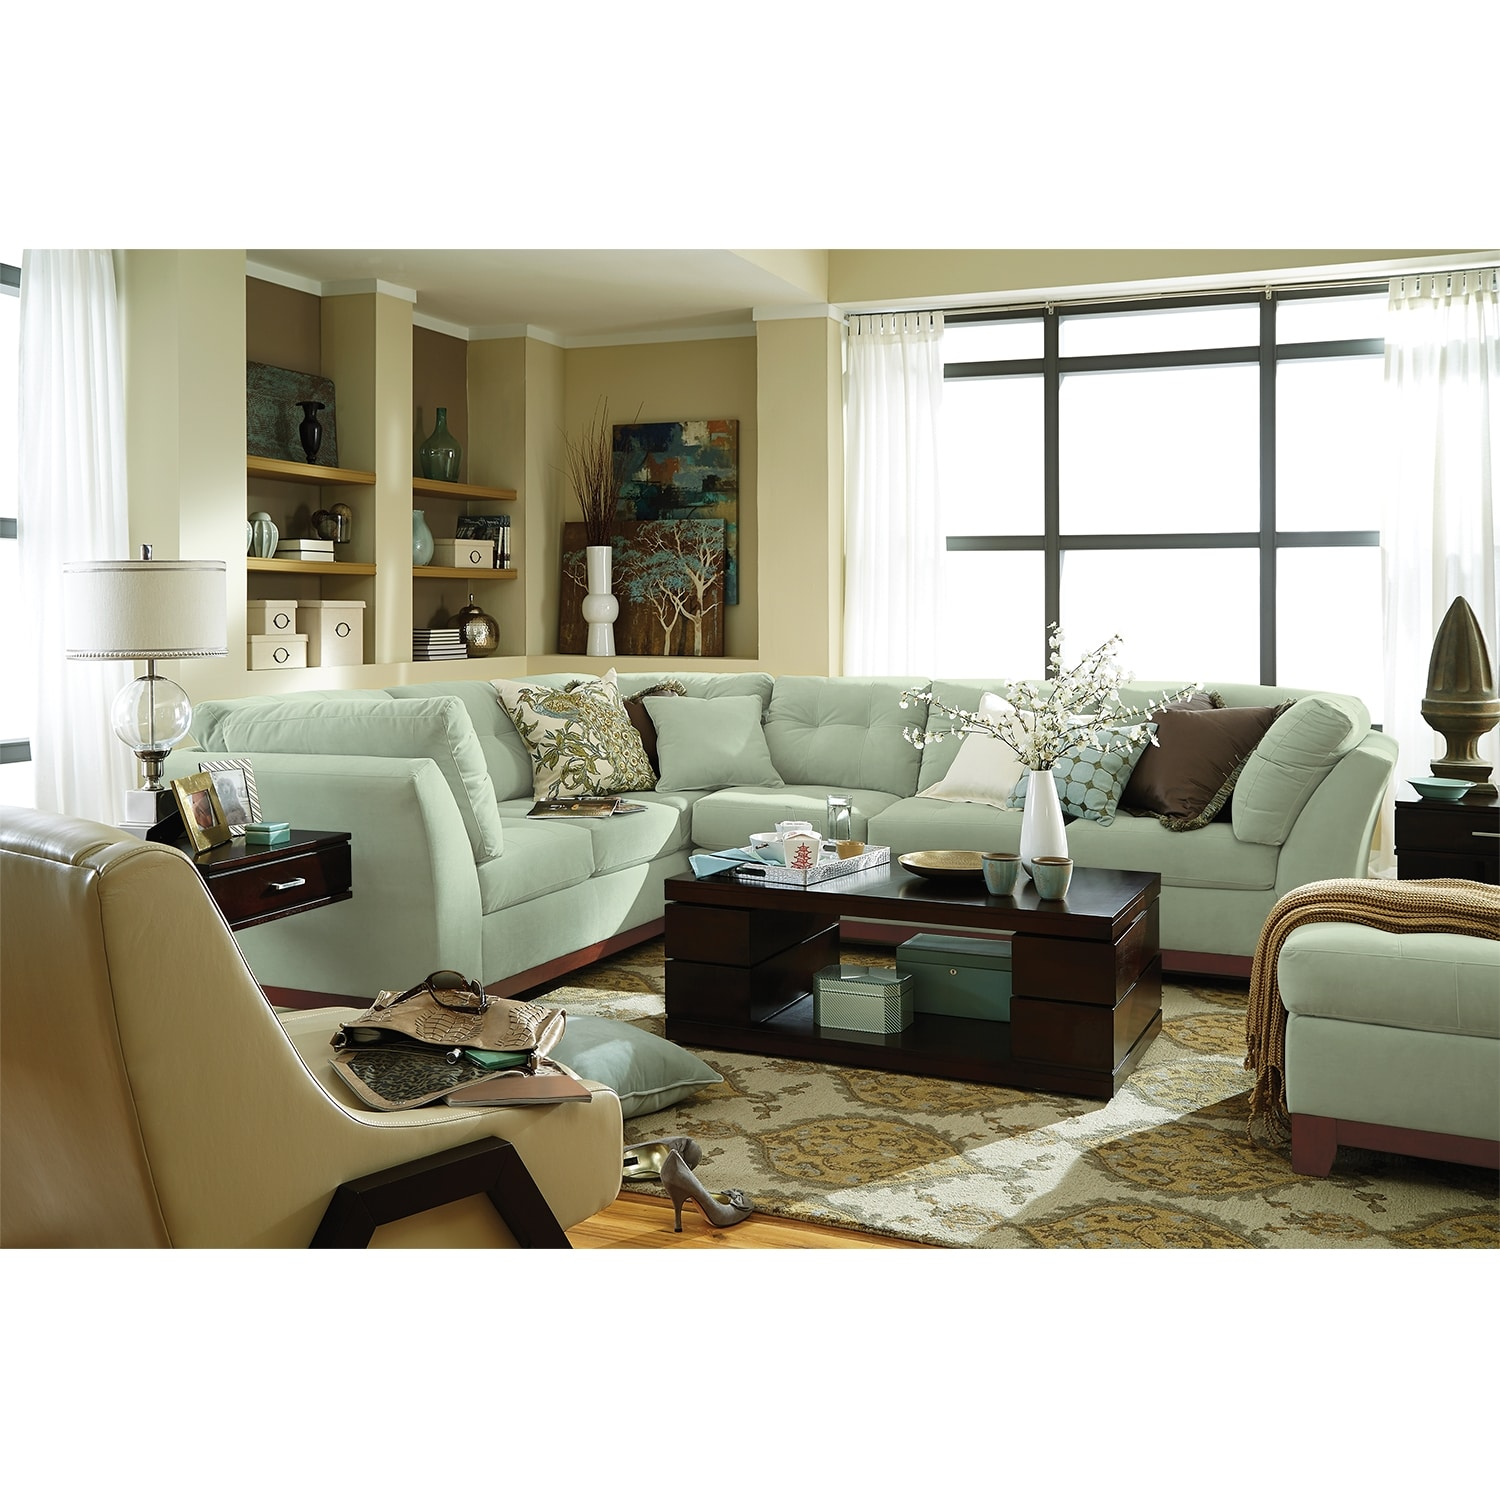 Living Room Furniture Whole Whole Living Room Sets Martinaylapeligrosacom